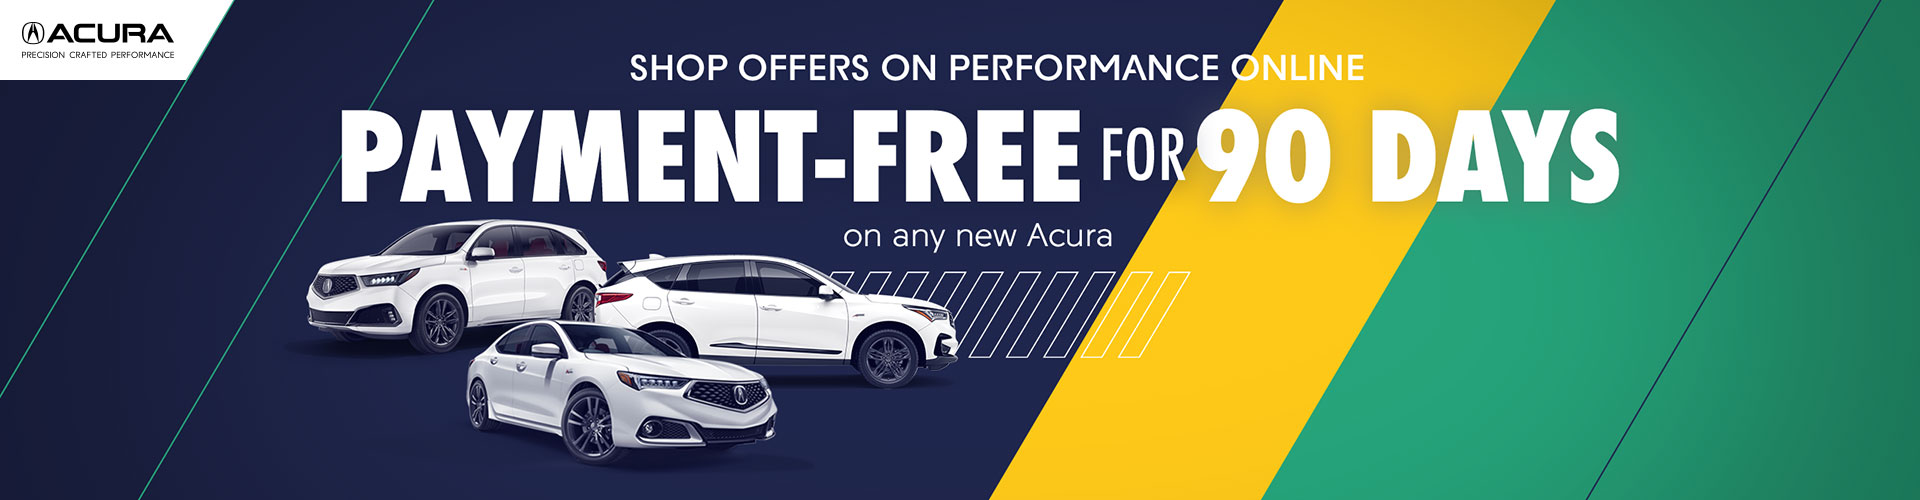 Worry Free Savings - Payment Free for 90 days on all new Acuras